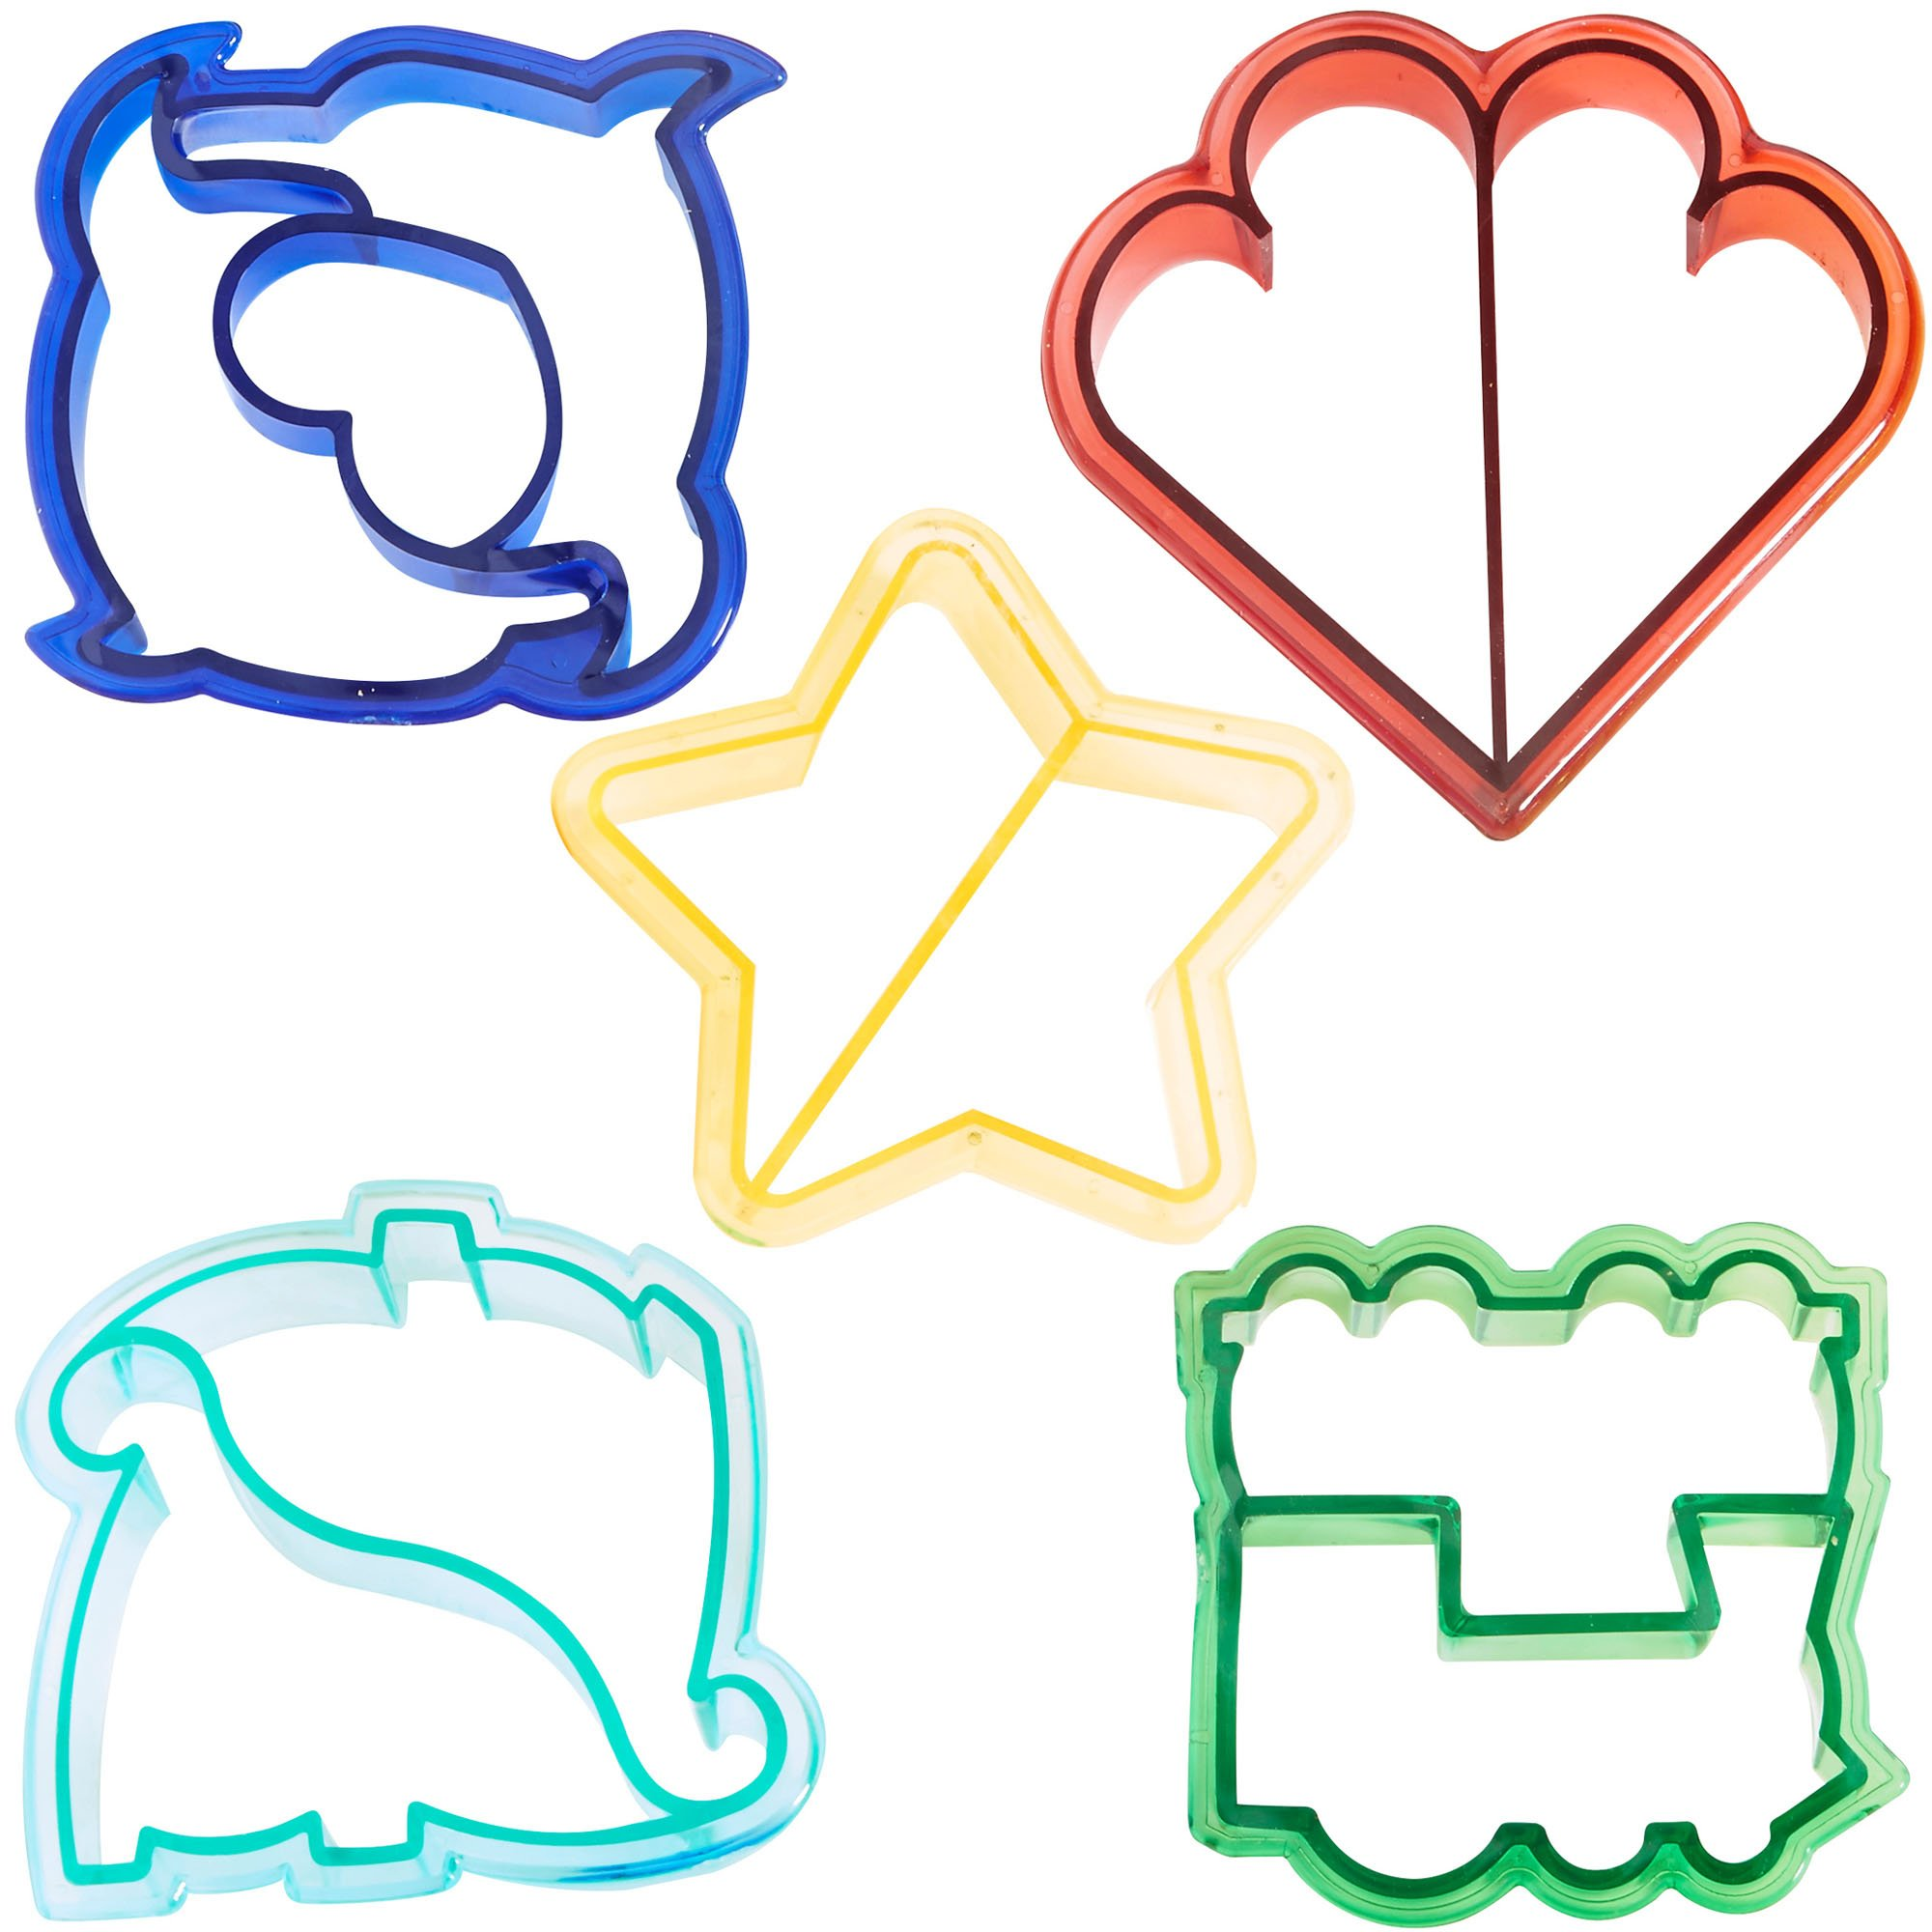 VonShef Fun Cookie Cake and Sandwich Cutter Shapes for Kids, Set of 5 Shapes Dinosaur, Dolphin, Heart, Star and Train, Multi Colored, 5pc by VonShef (Image #1)